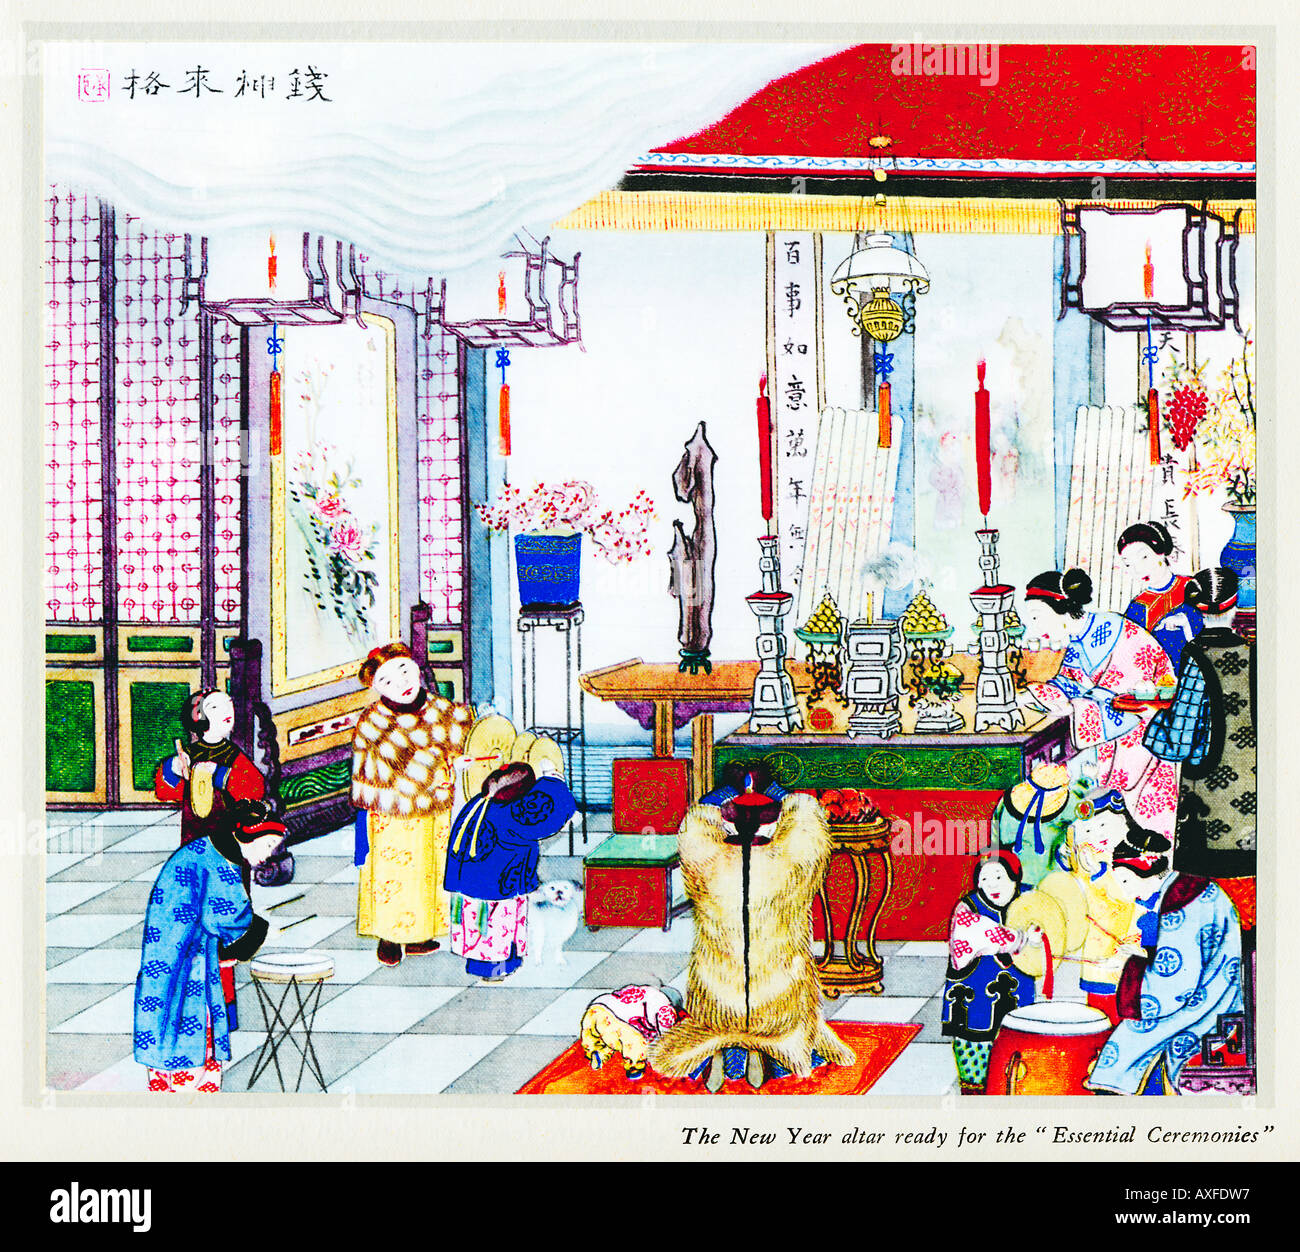 The New Year Altar ready for the Essential Ceremonies from the 1930 book by J Bredon on Chinese New Year Festivals - Stock Image